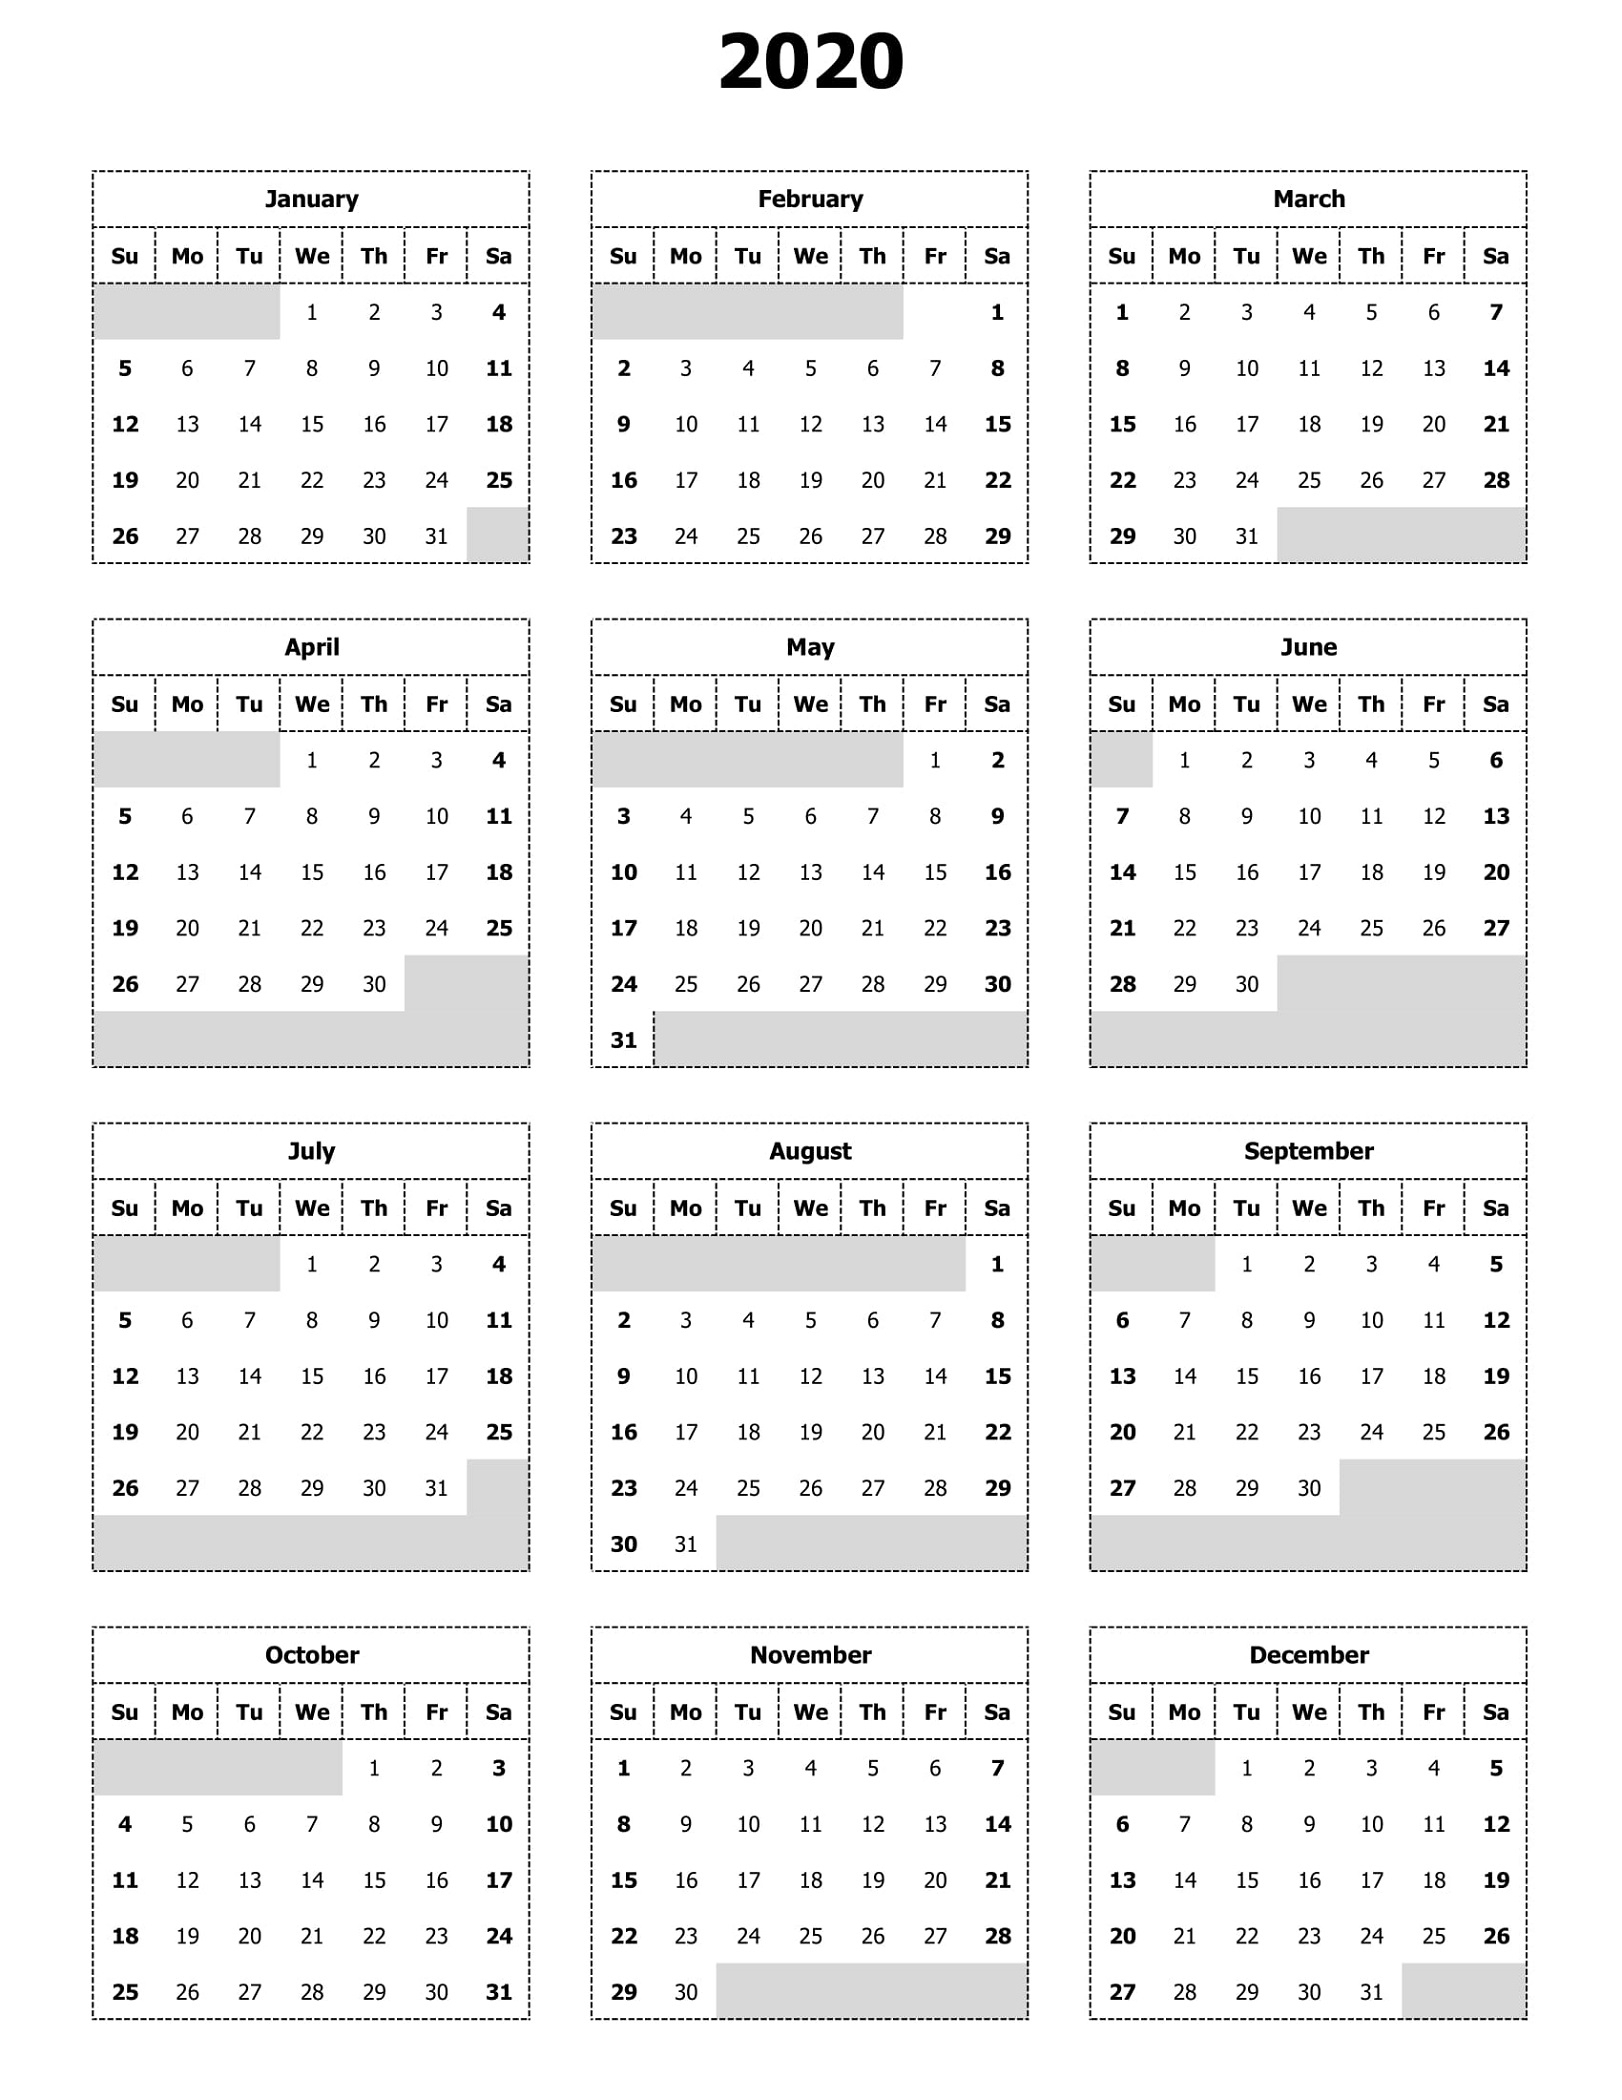 Free 2020 Calendar To Print | 101 Activity throughout Print Free2020 Calendars Without Downloading